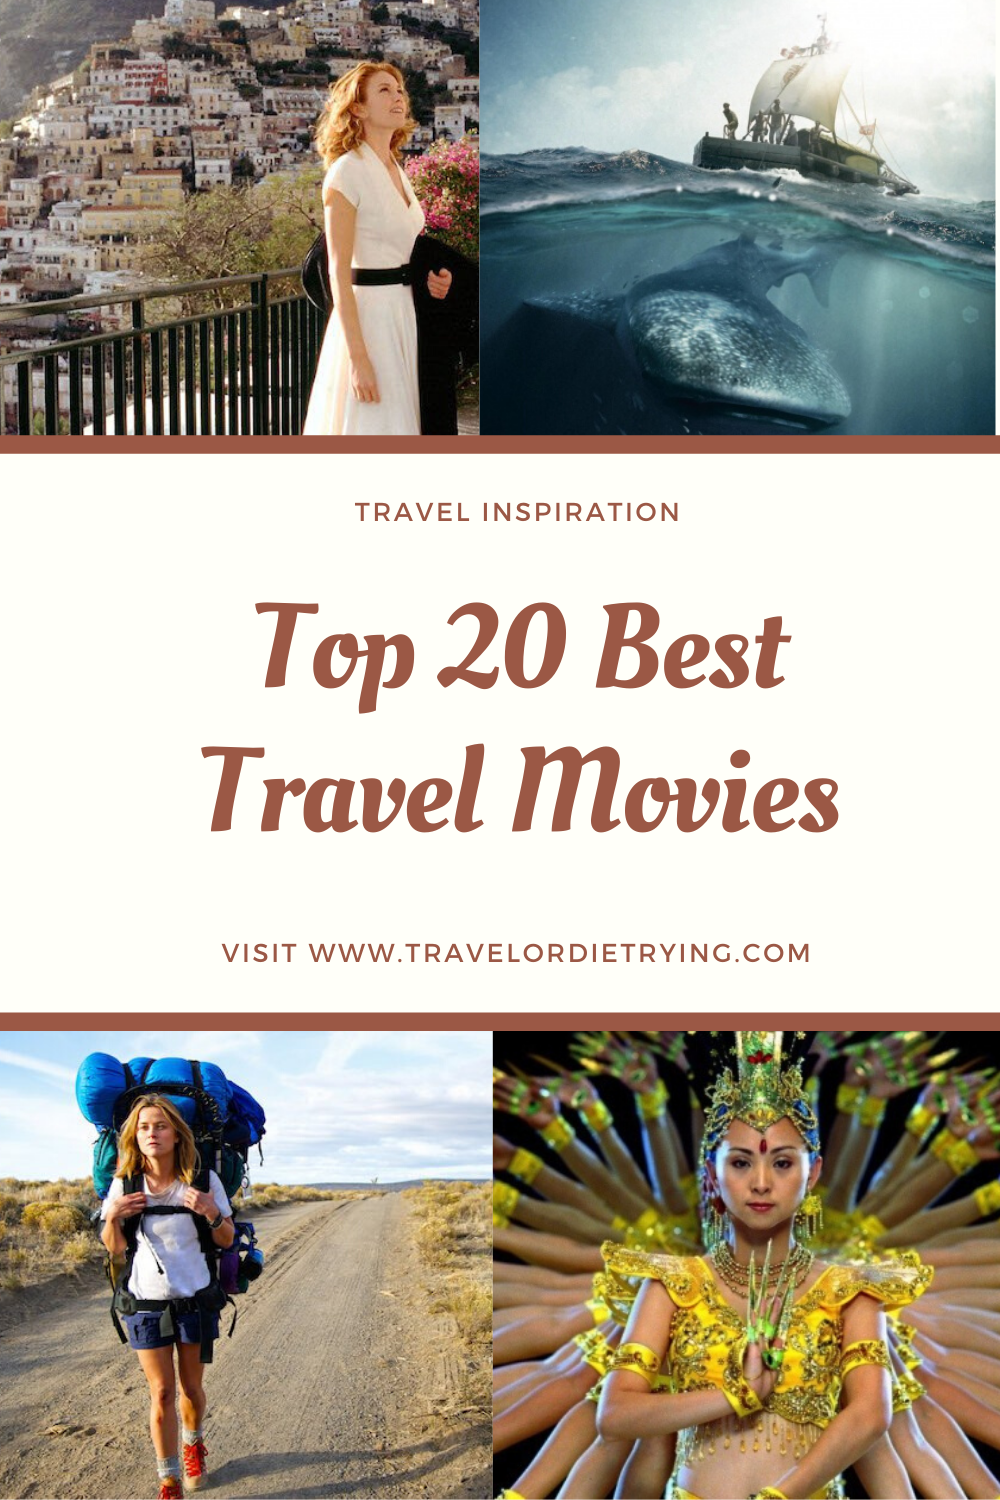 Here is a list of the best travel movies of all time. You can watch these super cool films over & over again, and never get sick of them. #travel #movies #travelmovies #travelinspiration